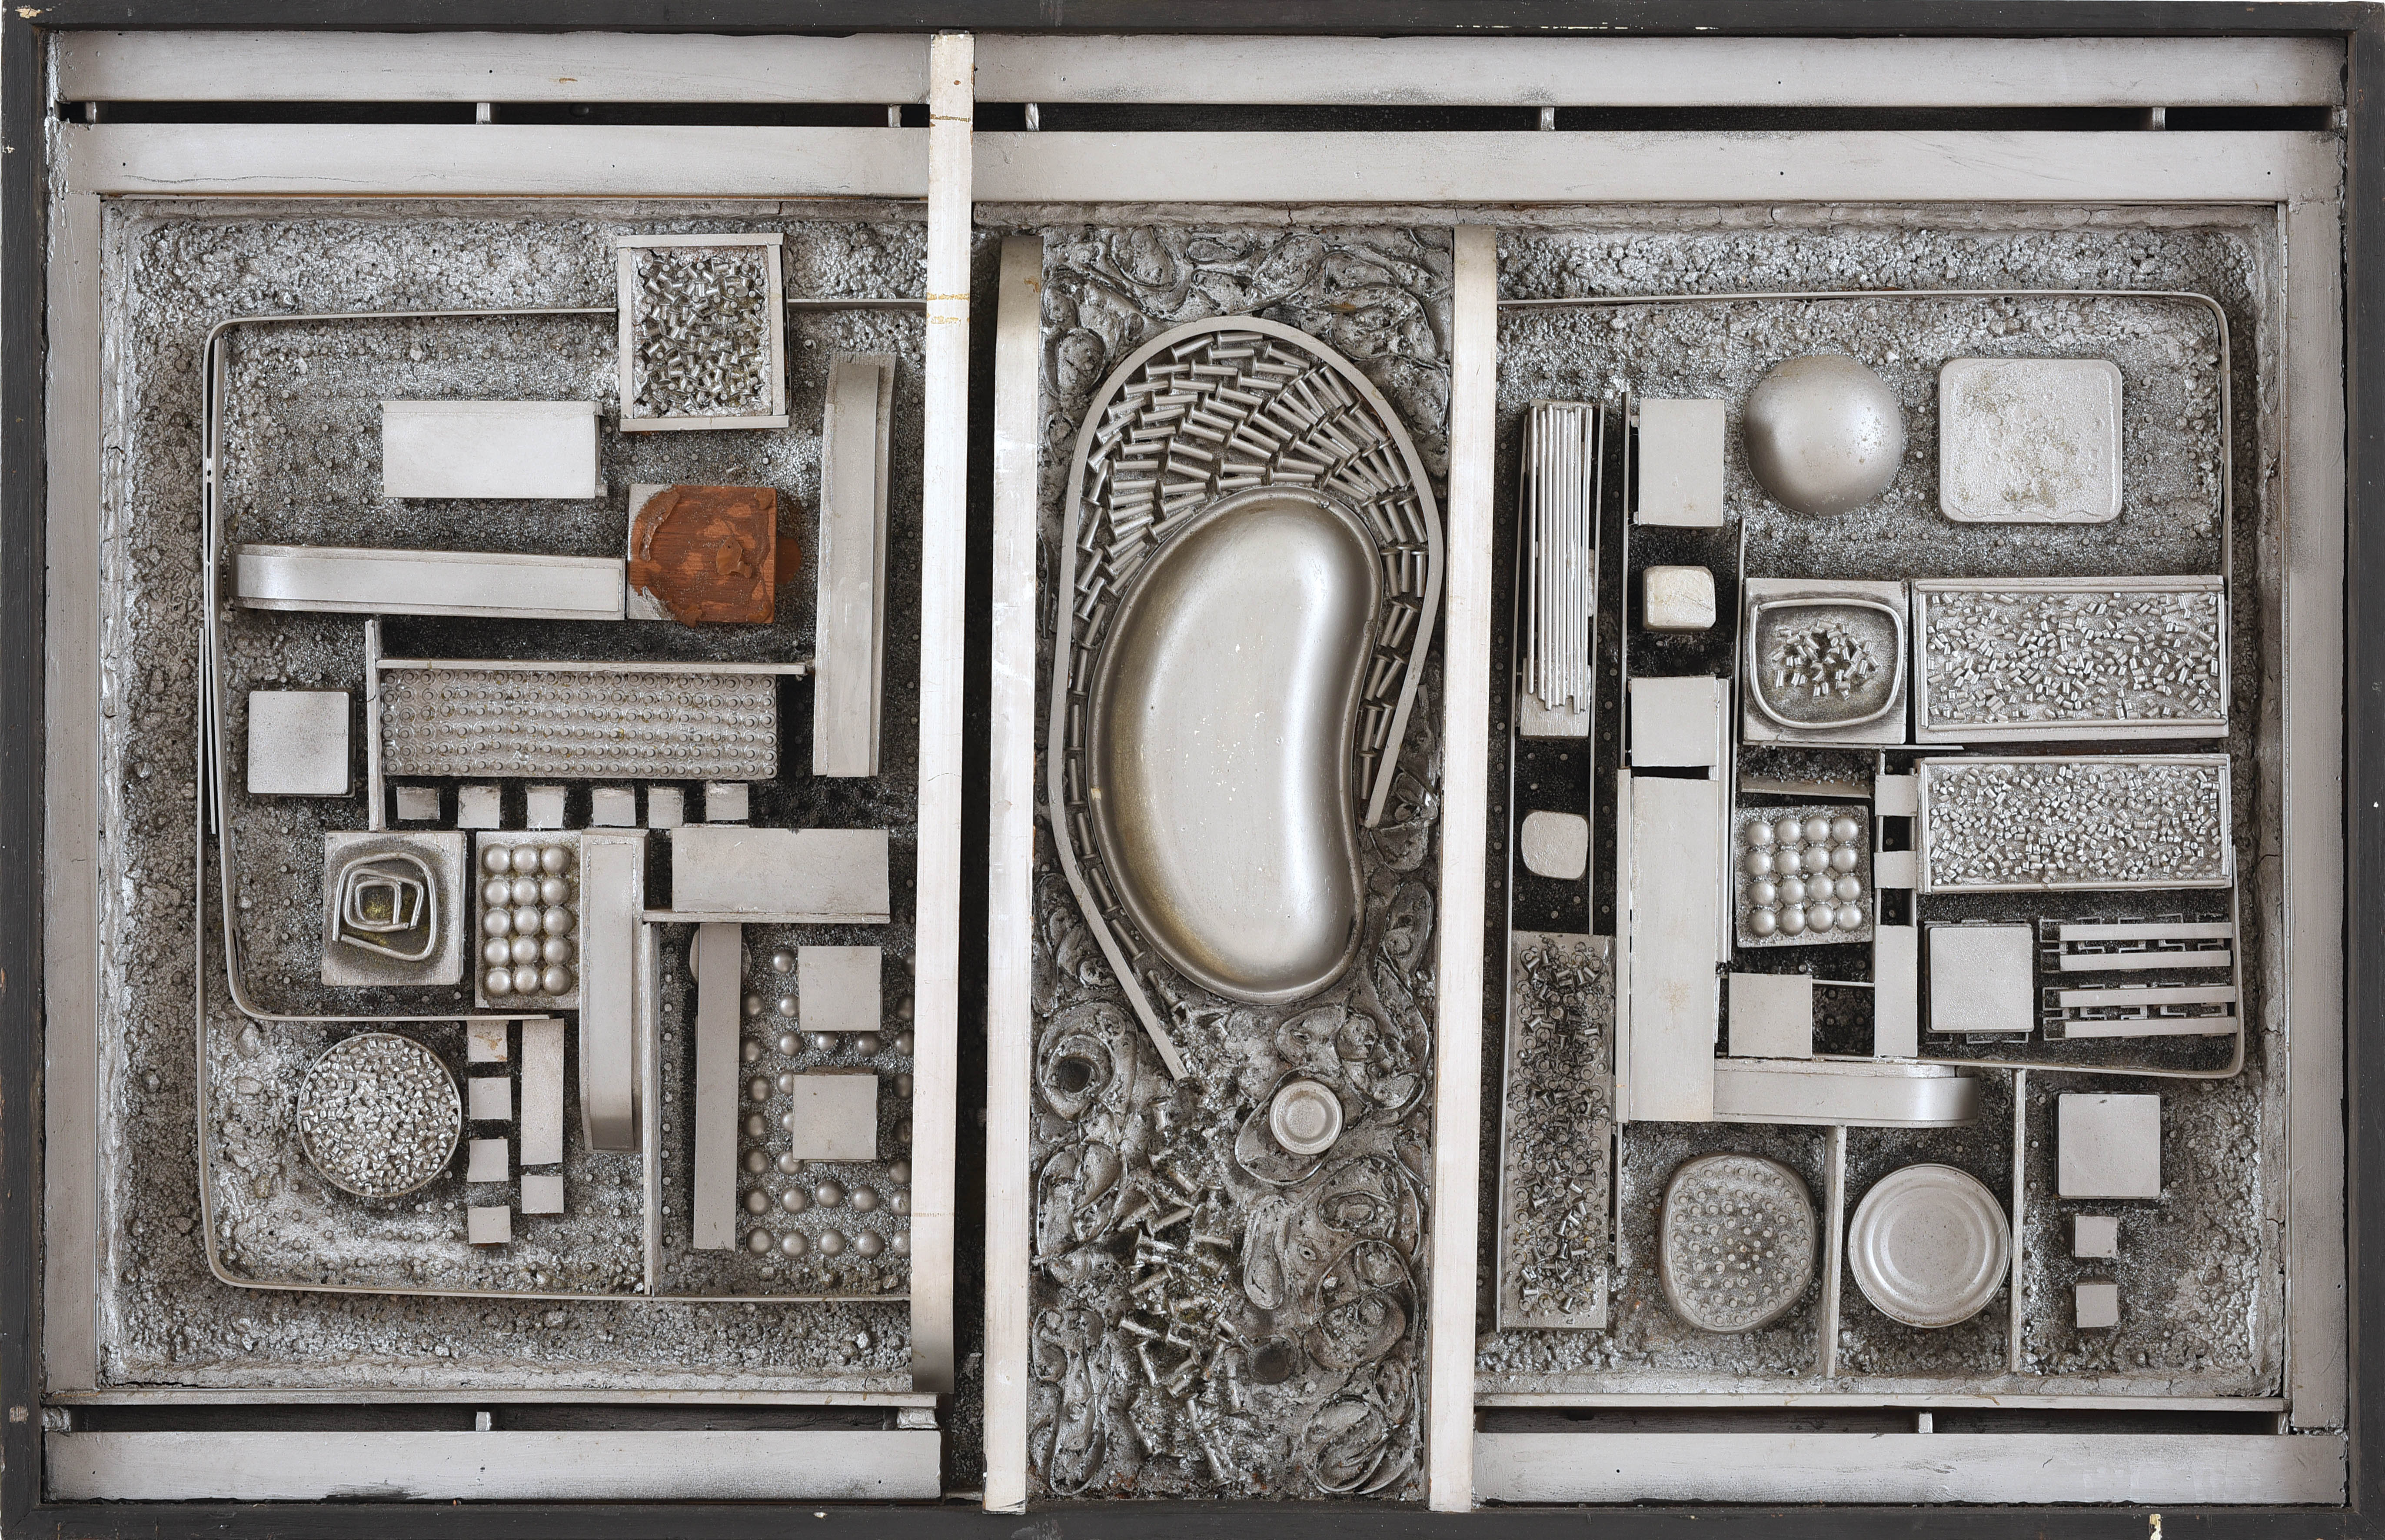 Cheong Soo Pieng, Construction, mixed media, 68.5 x 107 x 7 cm, 1966